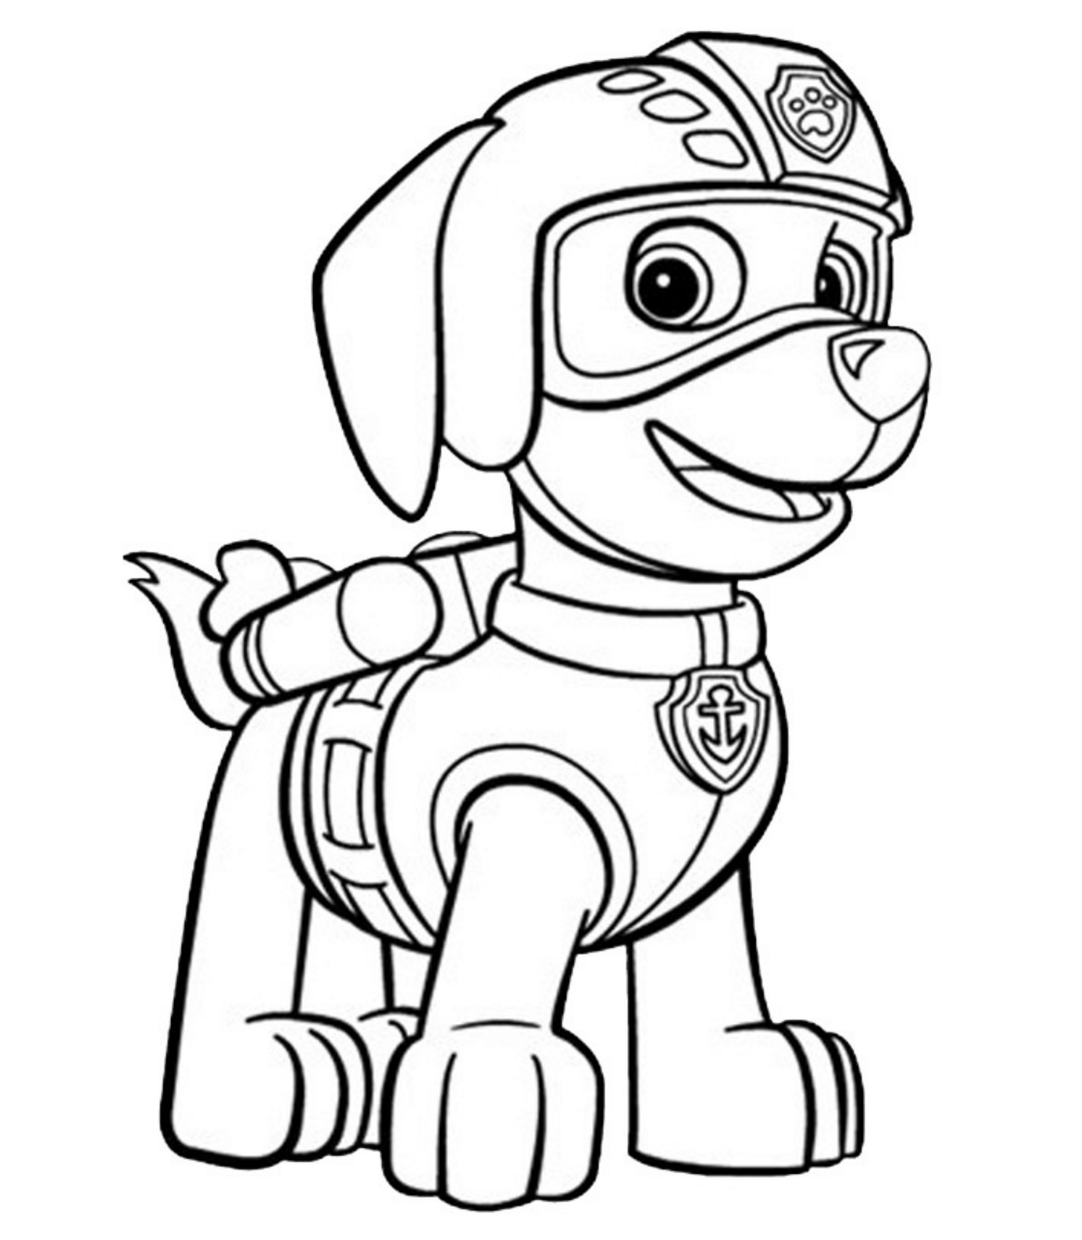 Paw Patrol Coloring Book Pages Coloring Home Paw Patrol Coloring Pages Paw Patrol Coloring Paw Patrol Printables